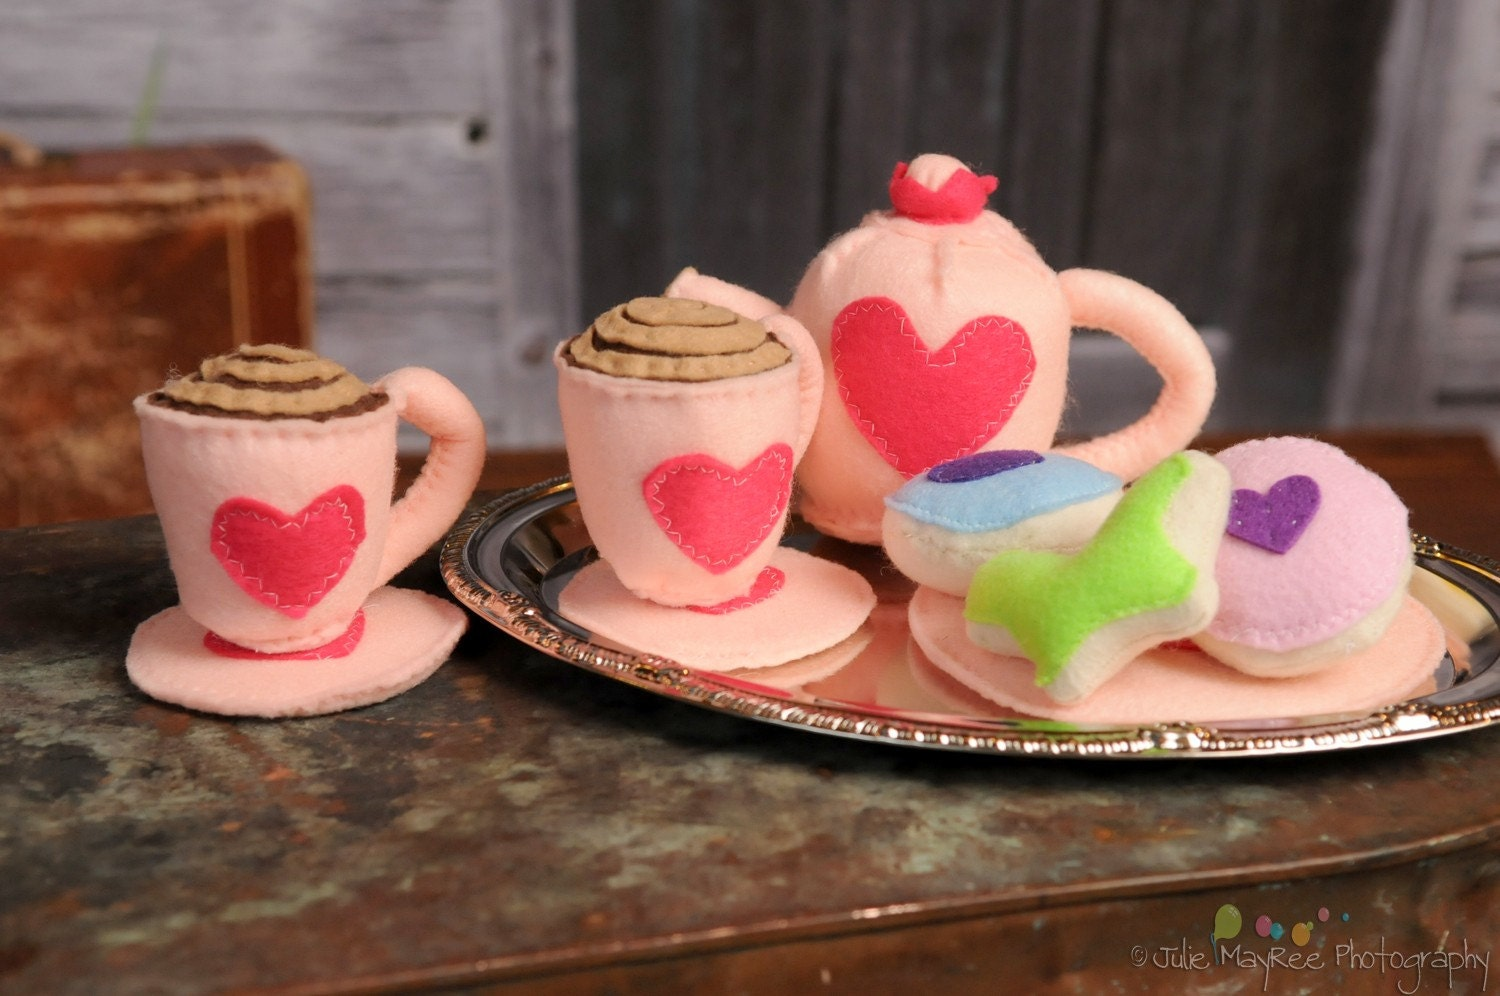 TEA SET - Eco Friendly Felt Play Food - Princess Tea Party Set on Silver Platter - Pink - Deliciously scented sugar cookies - Perfect for Valentine's Day